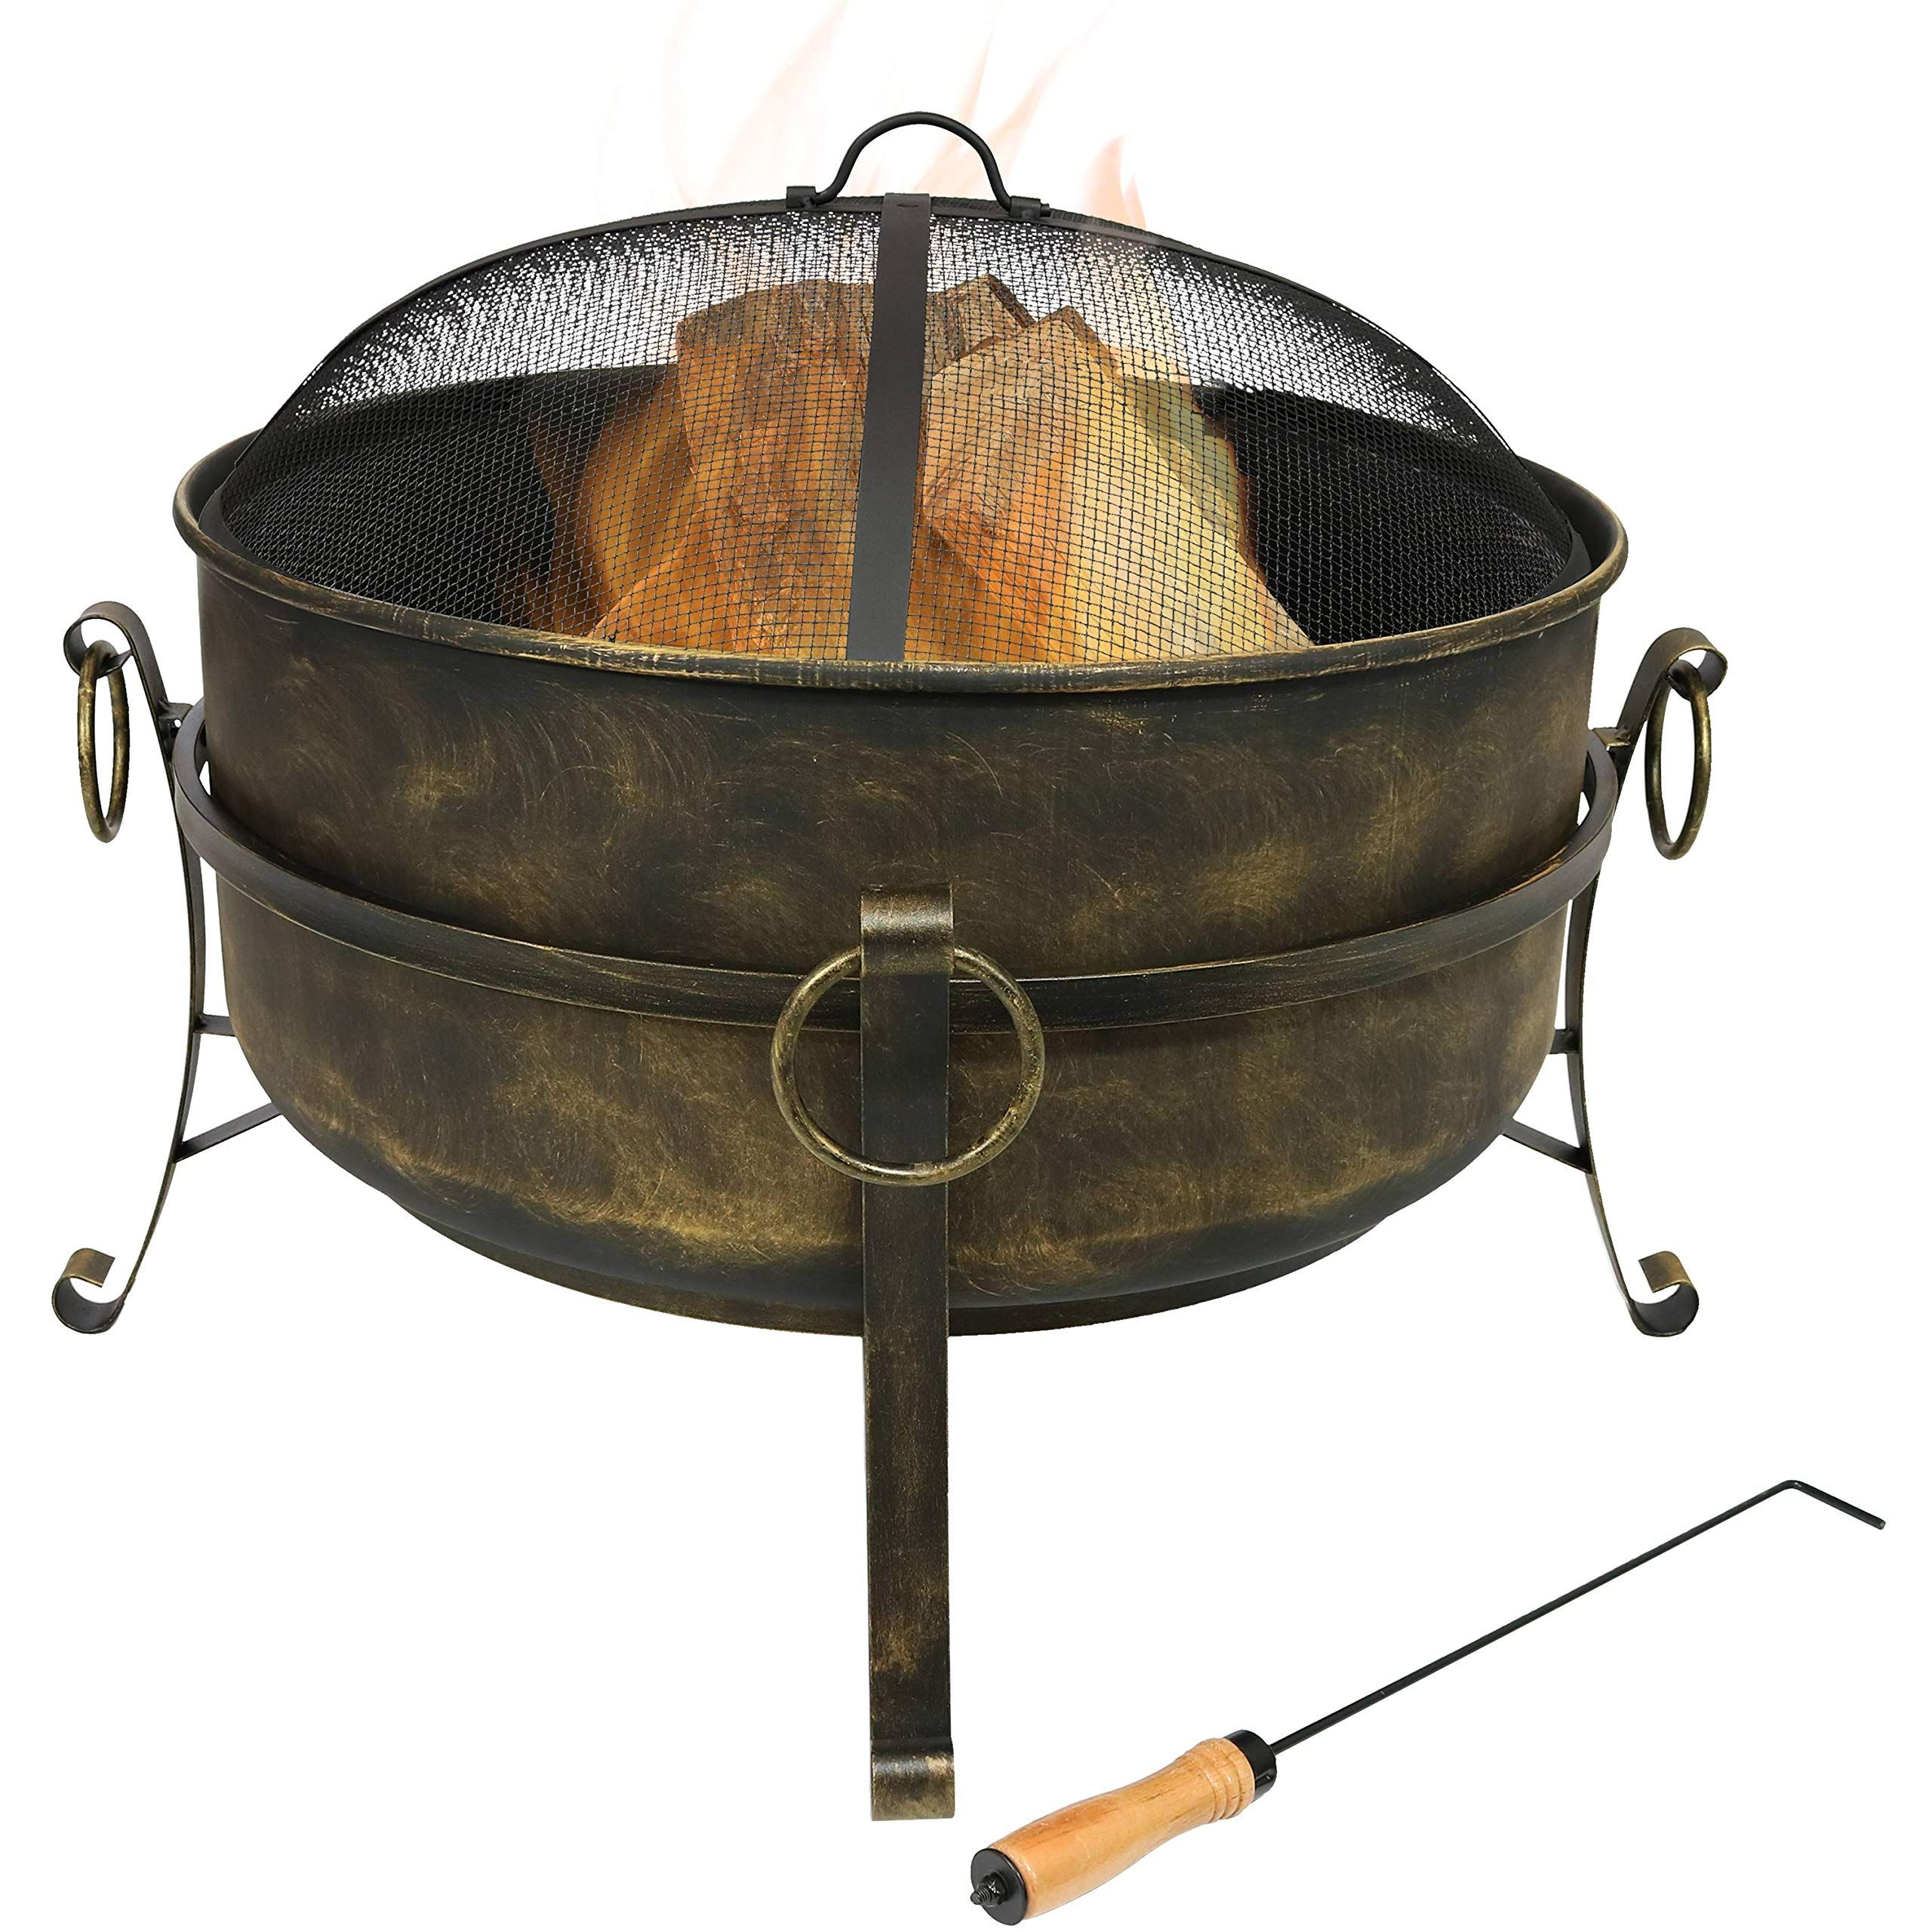 Sunnydaze Cauldron Outdoor Fire Pit 24 Inch Deep Bonfire Wood Burning Patio And Backyard Firepit For O Wood Burning Fire Pit Wood Burning Fires Fire Pit Bowl